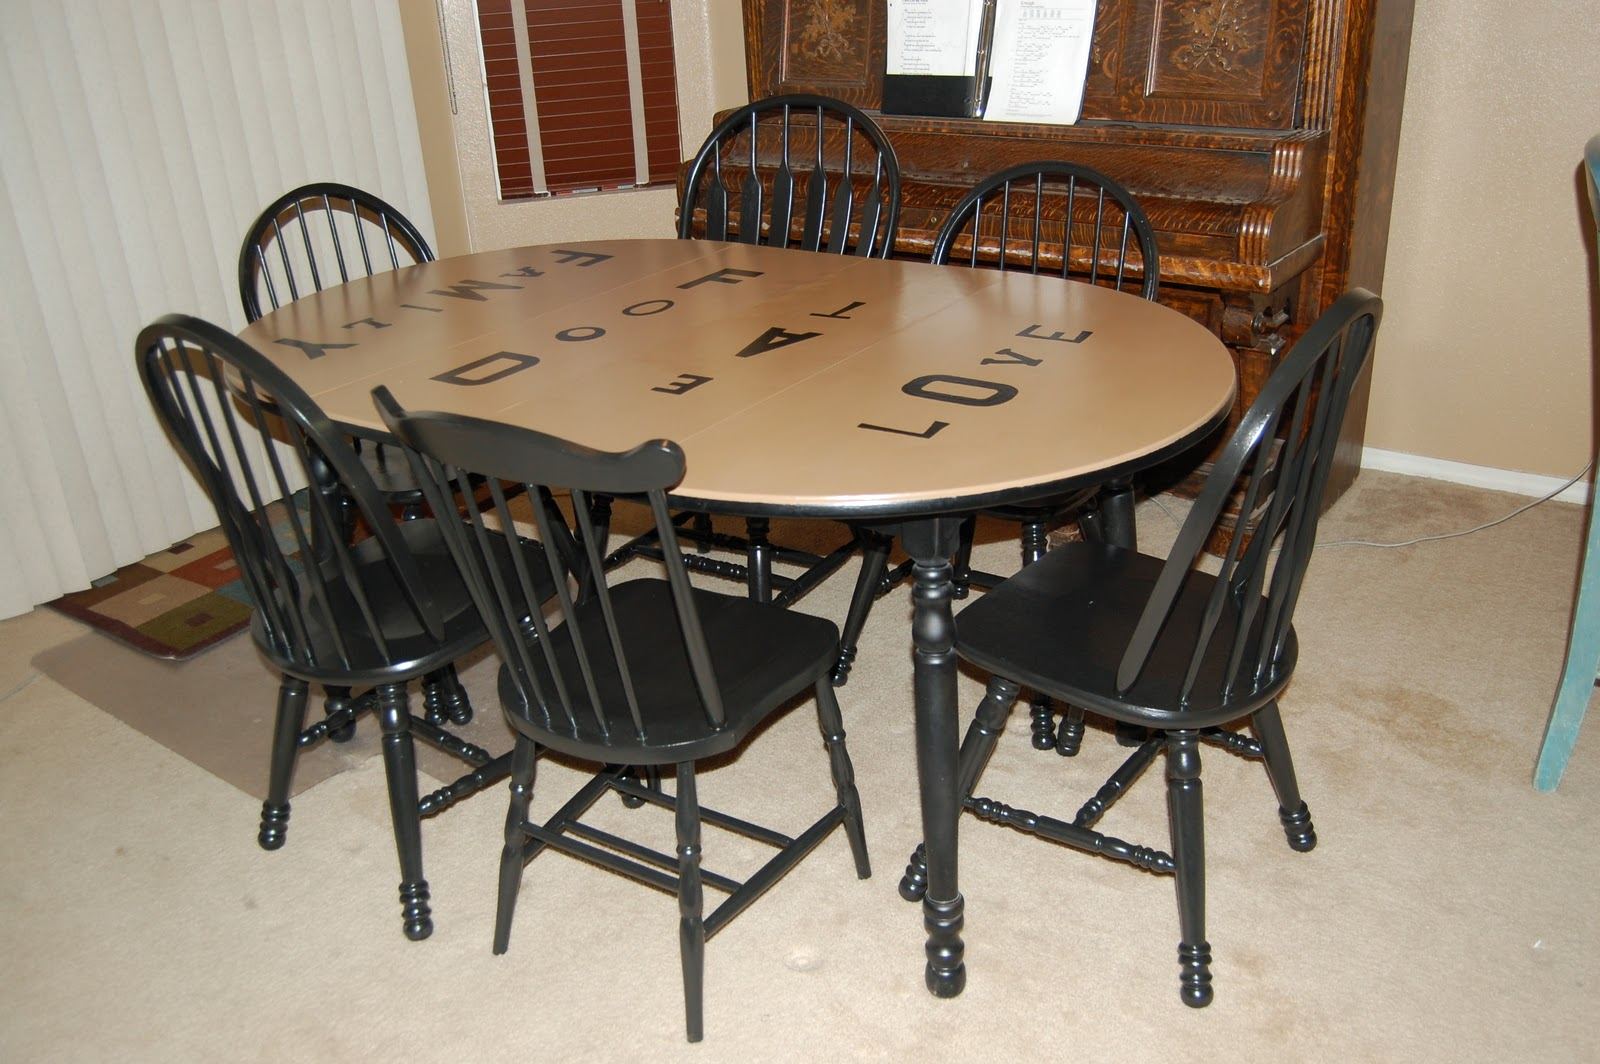 Diy furniture refinishing - Refinishing a kitchen table ...